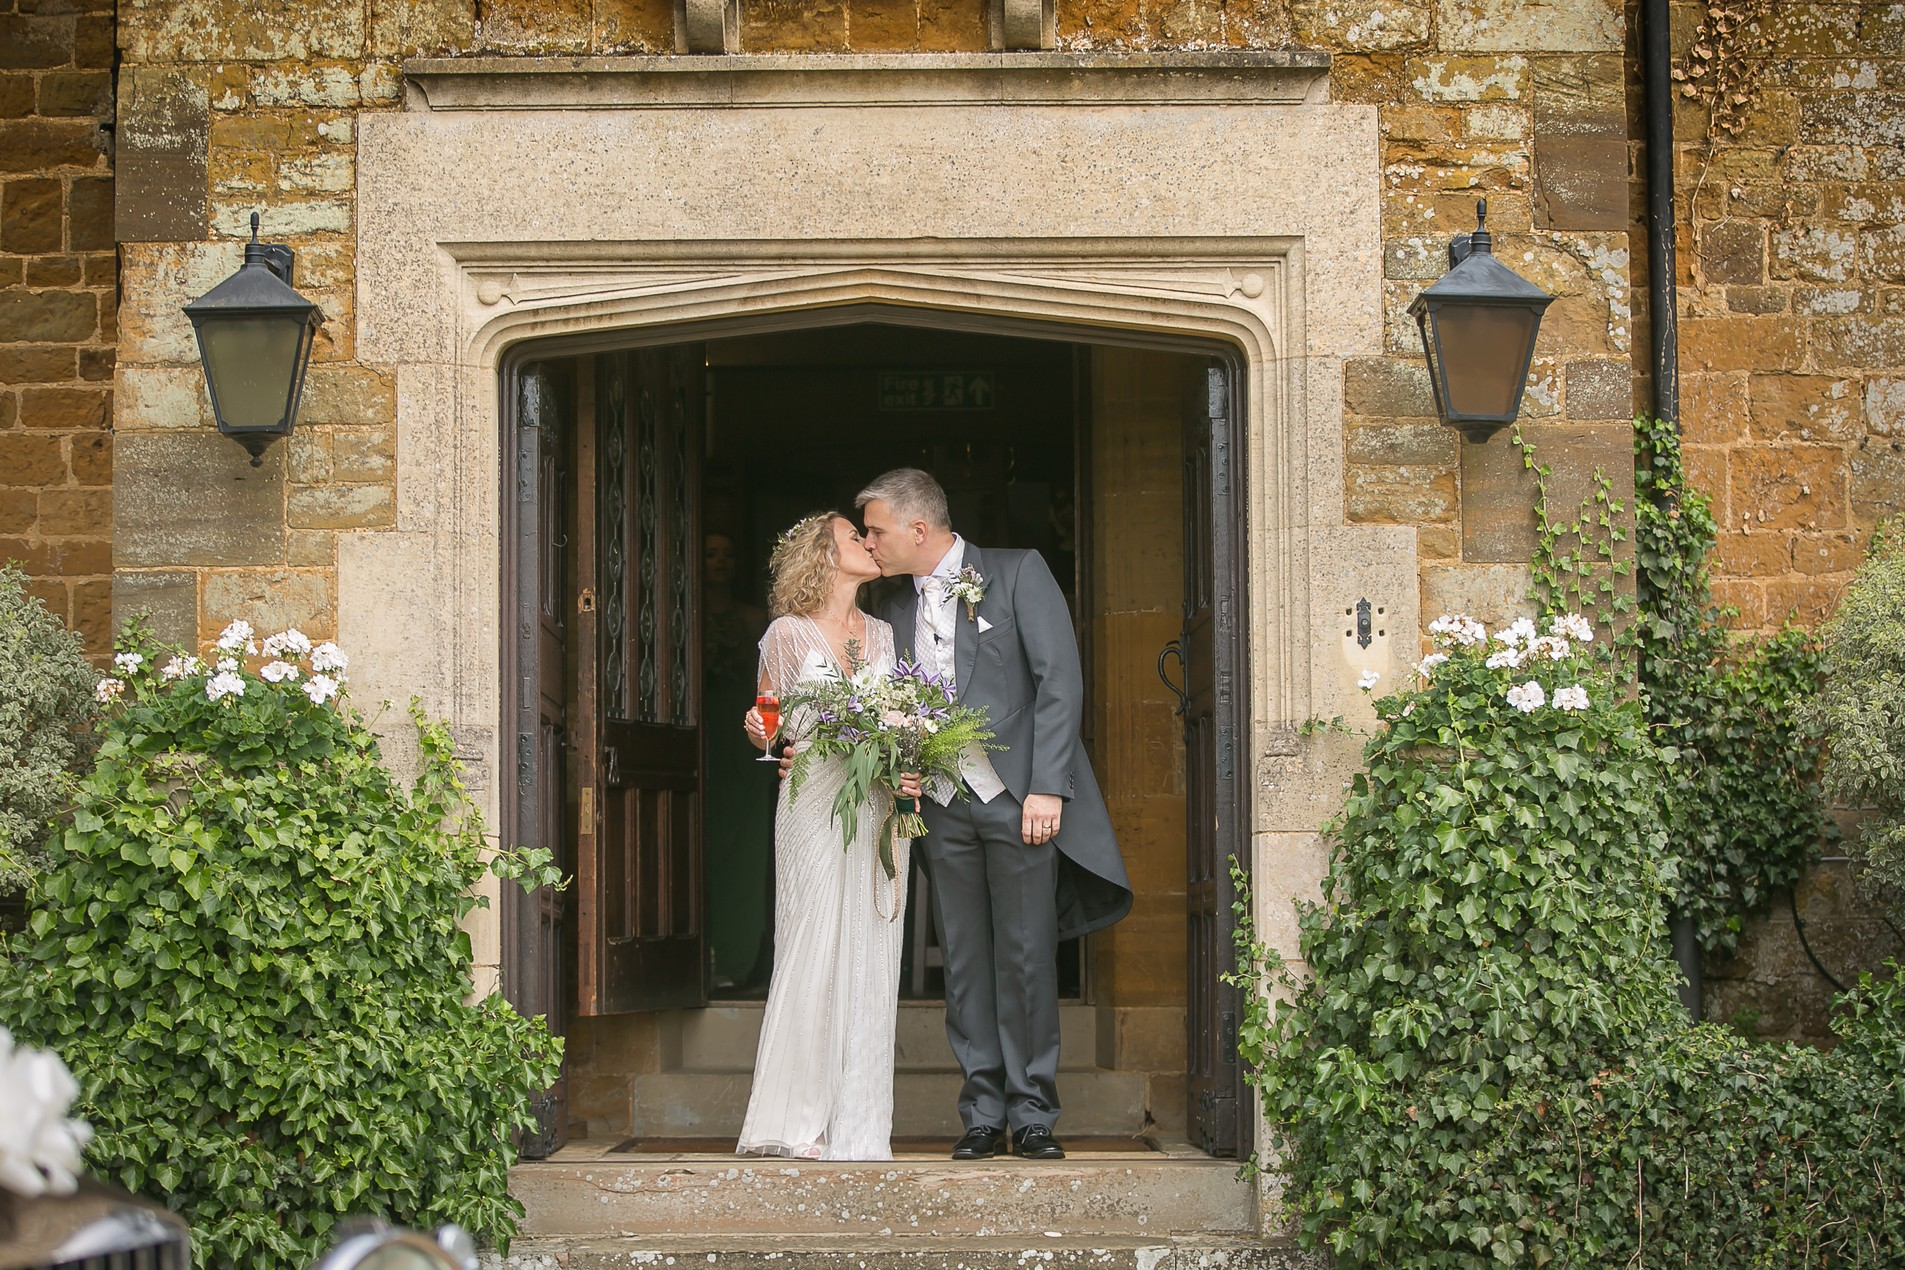 wedding, real wedding, highgate house wedding, wedding venues, wedding inspiration